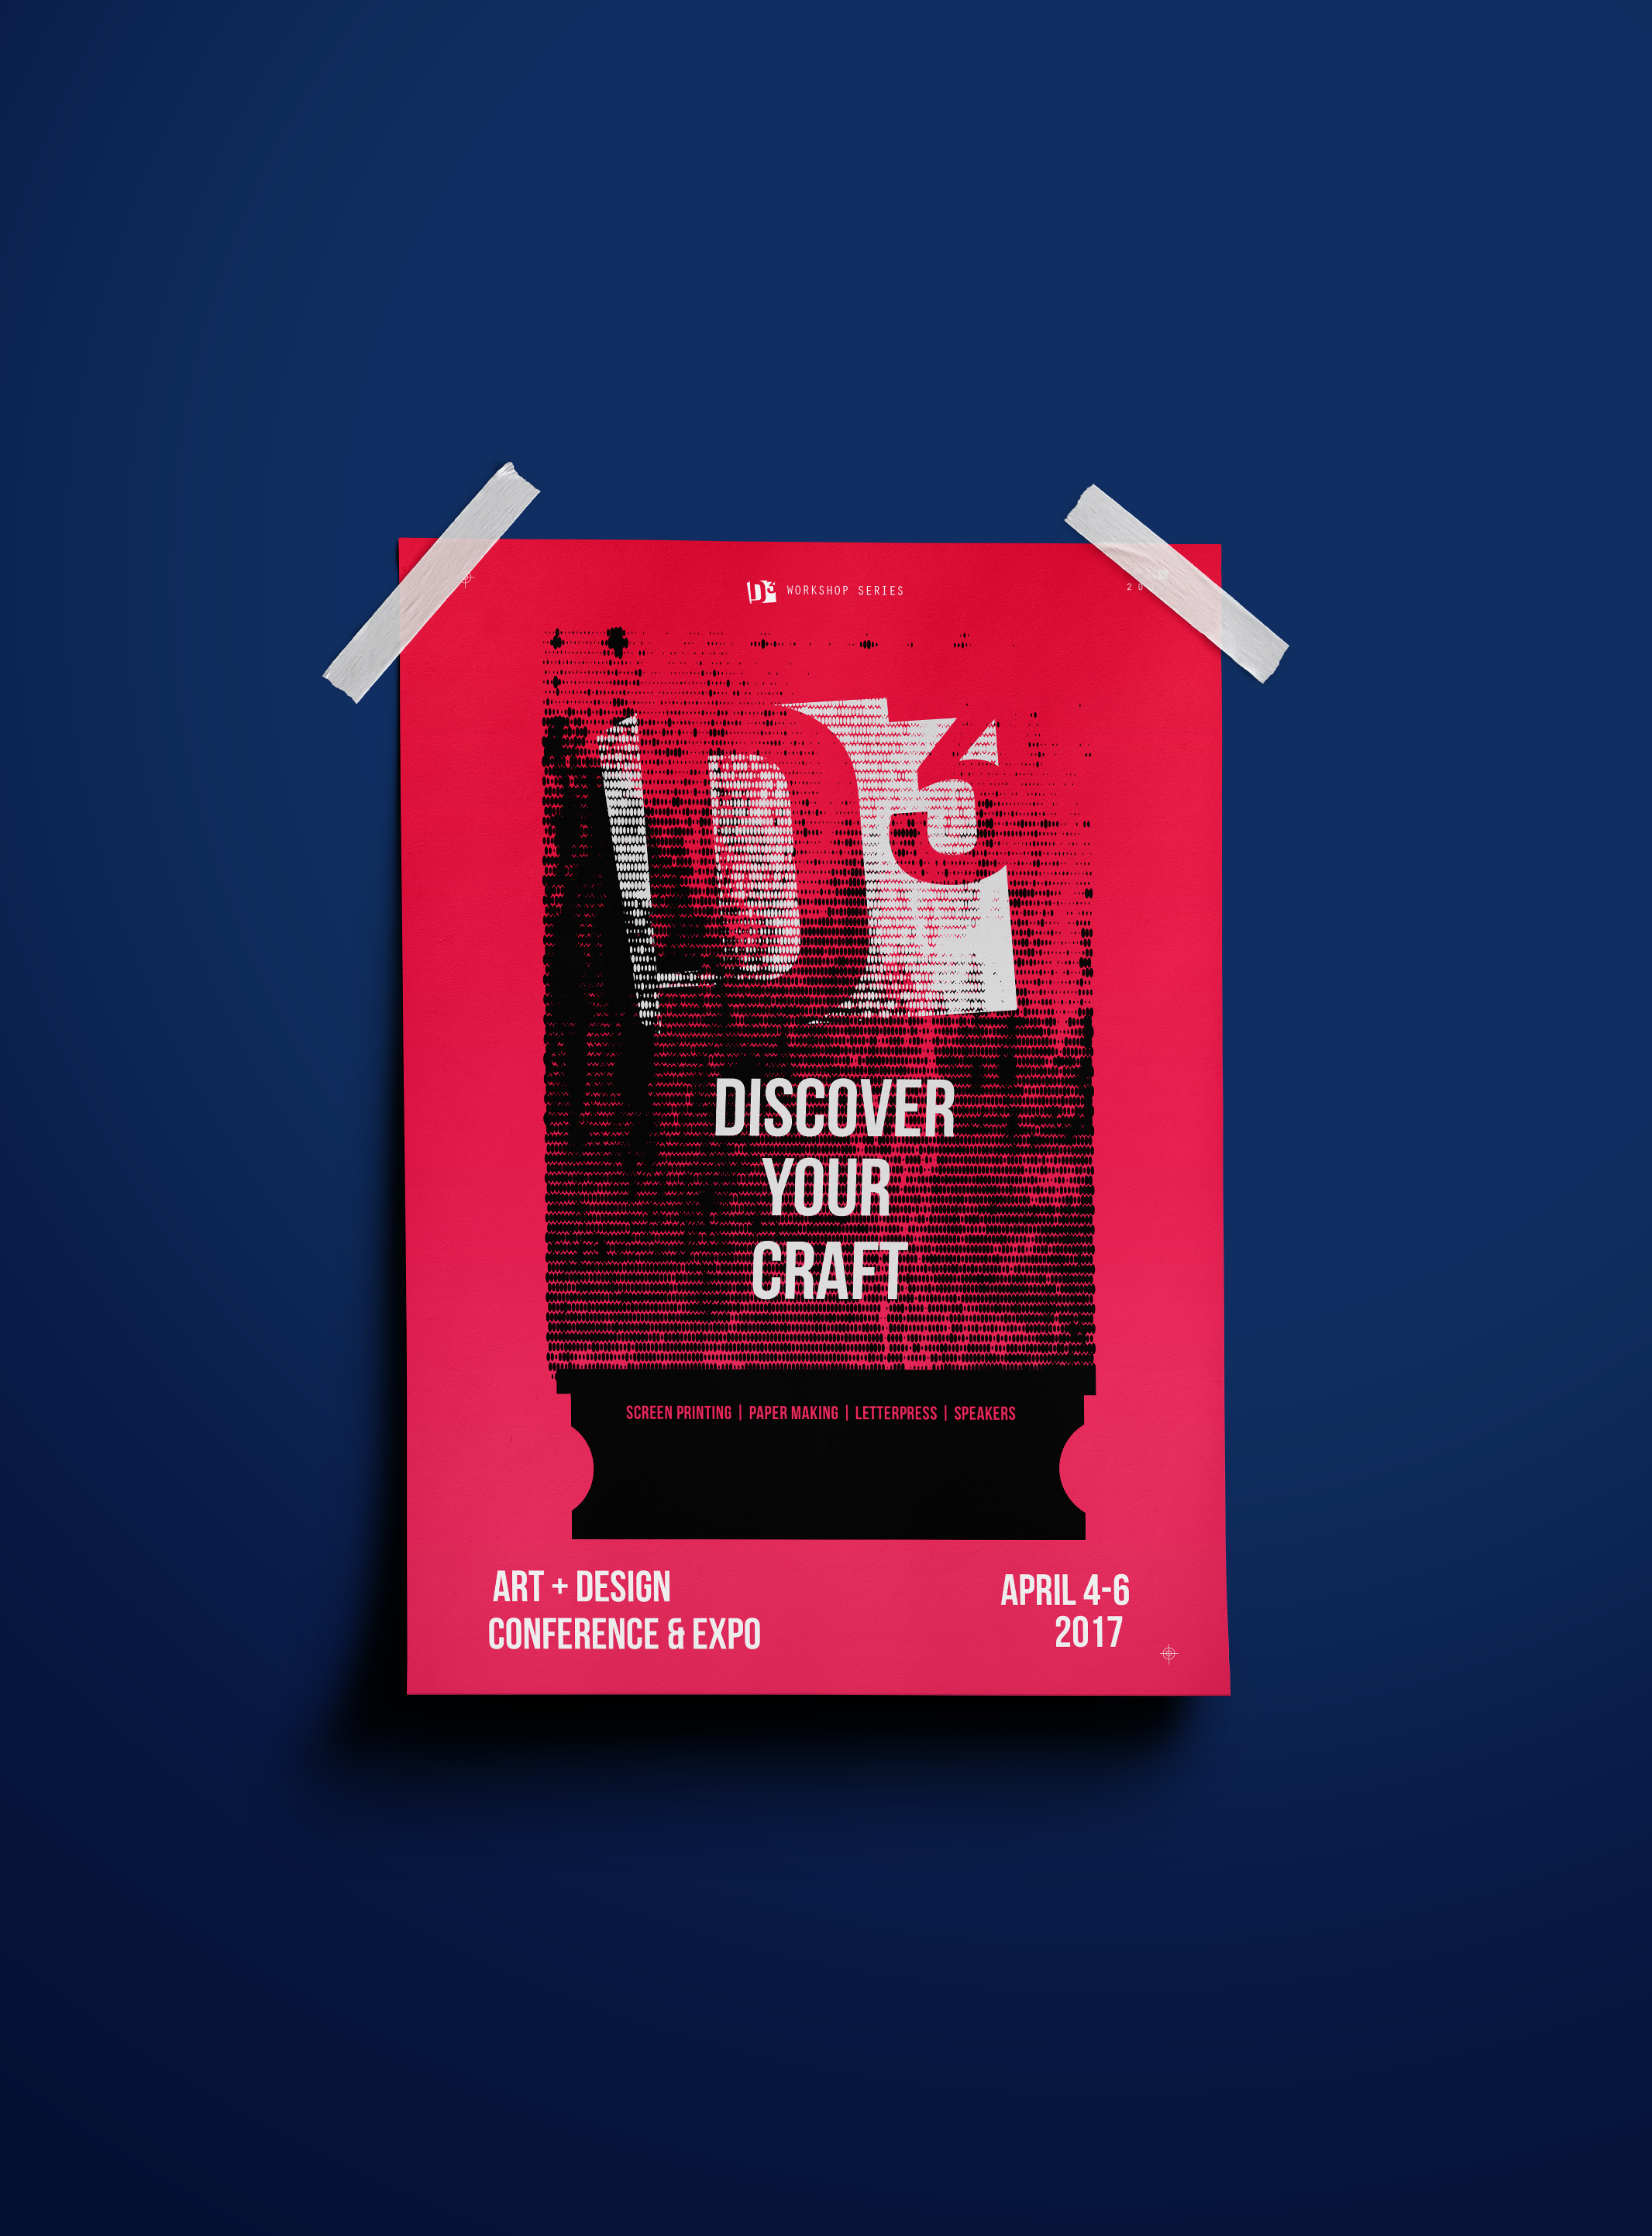 Discover Your Craft Poster Design for D3 Art + Design Conference at Miami-Dade North Campus, 4/4